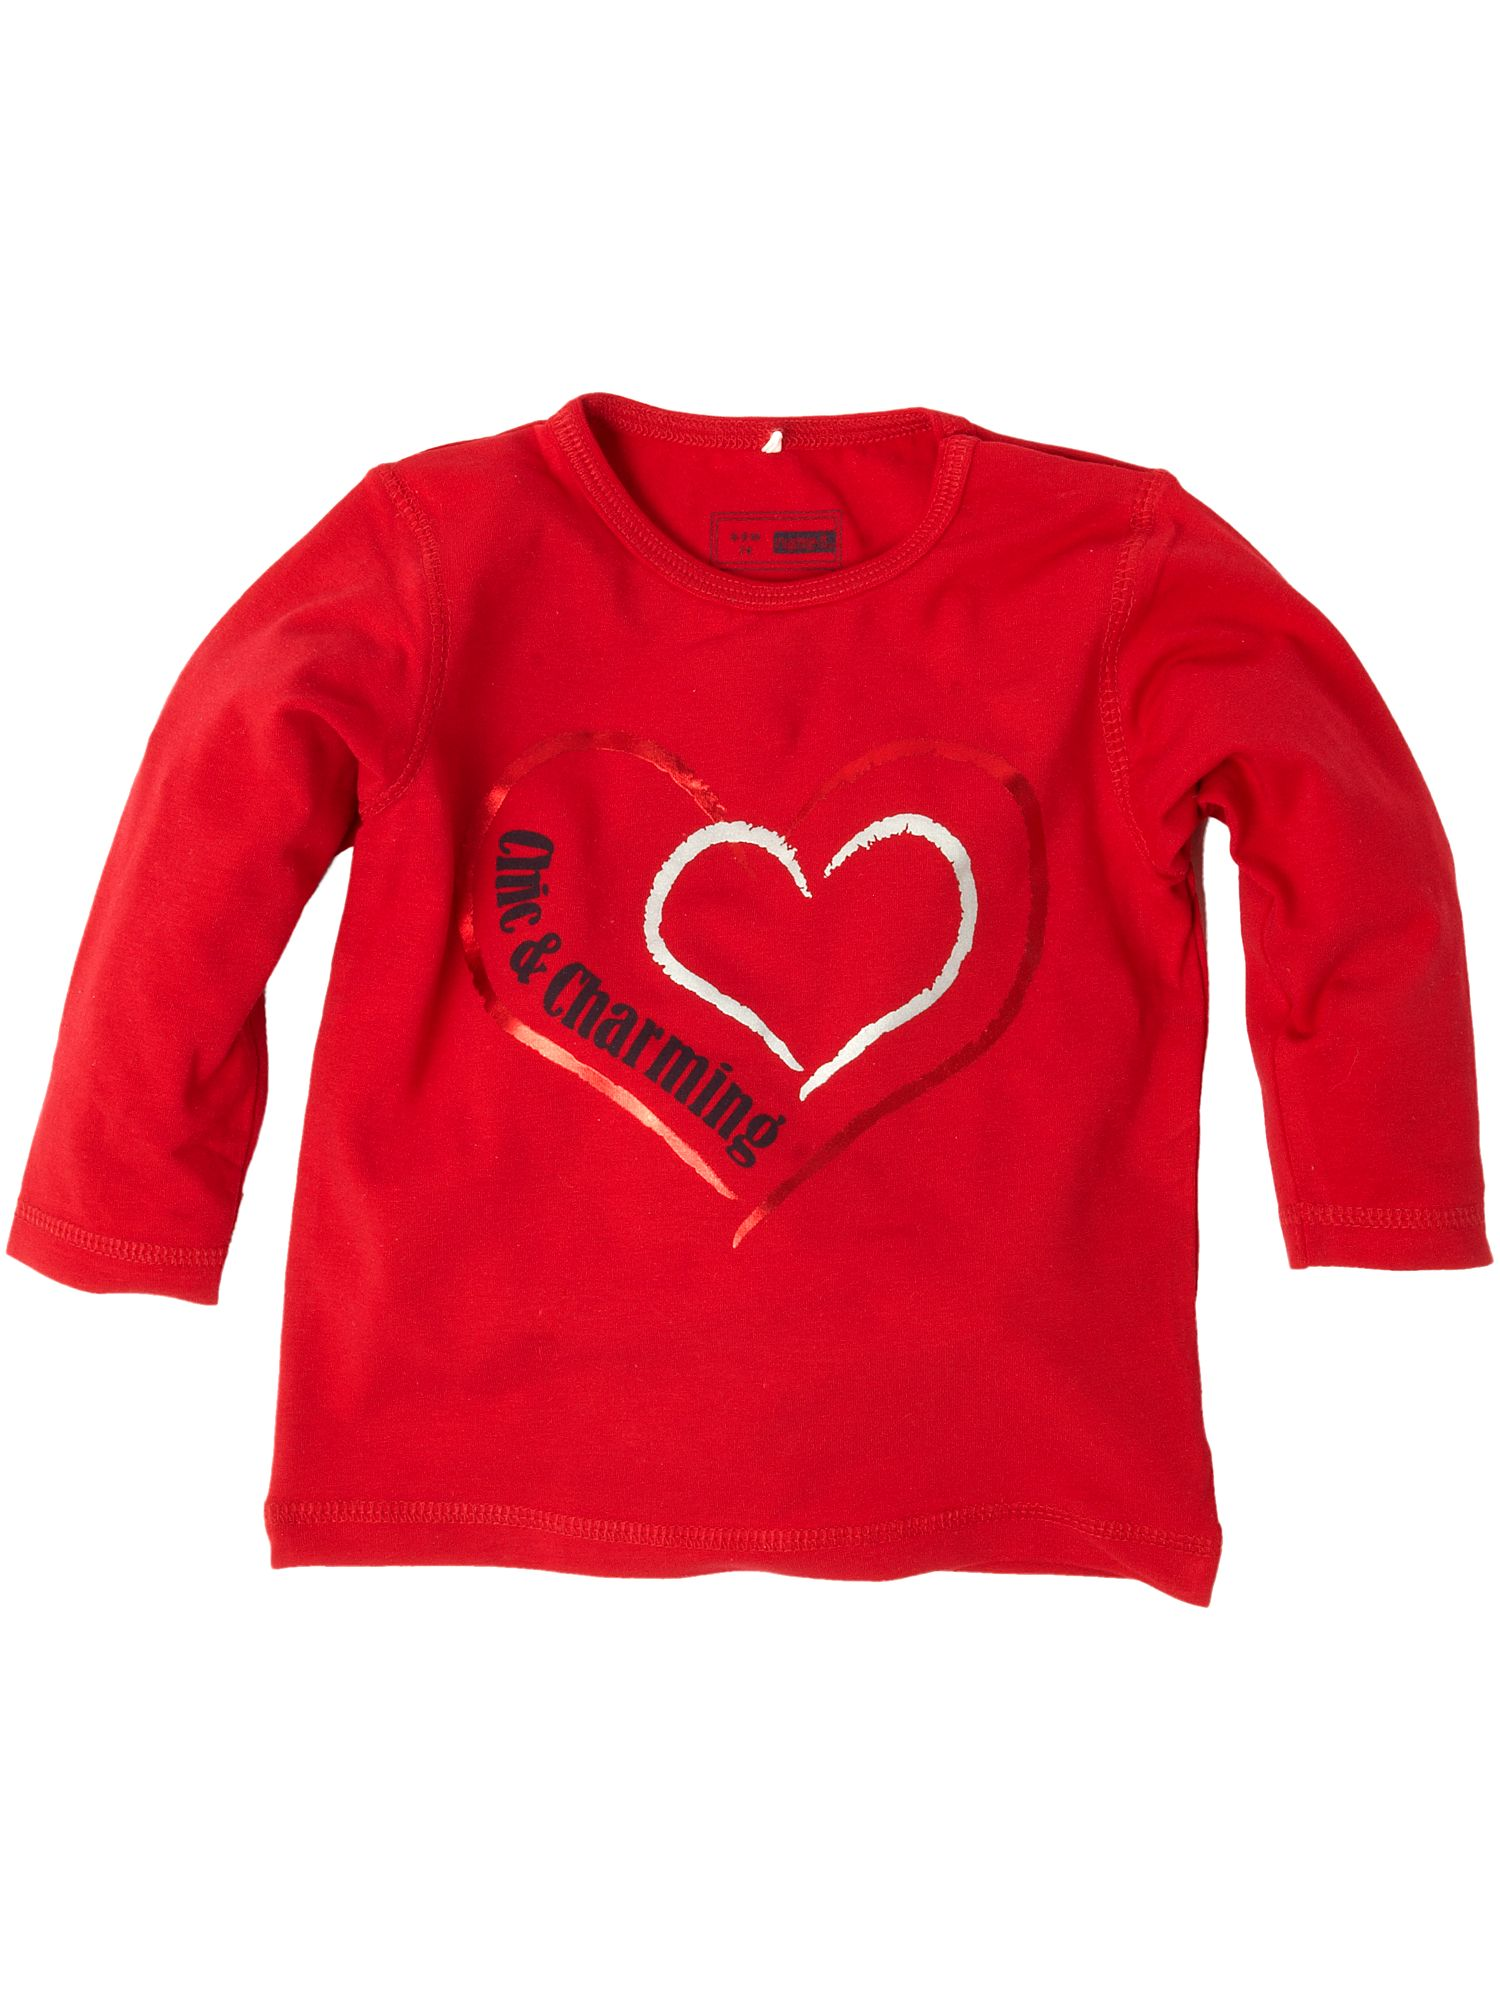 Name It Long sleeved heart print T-shirt Red product image